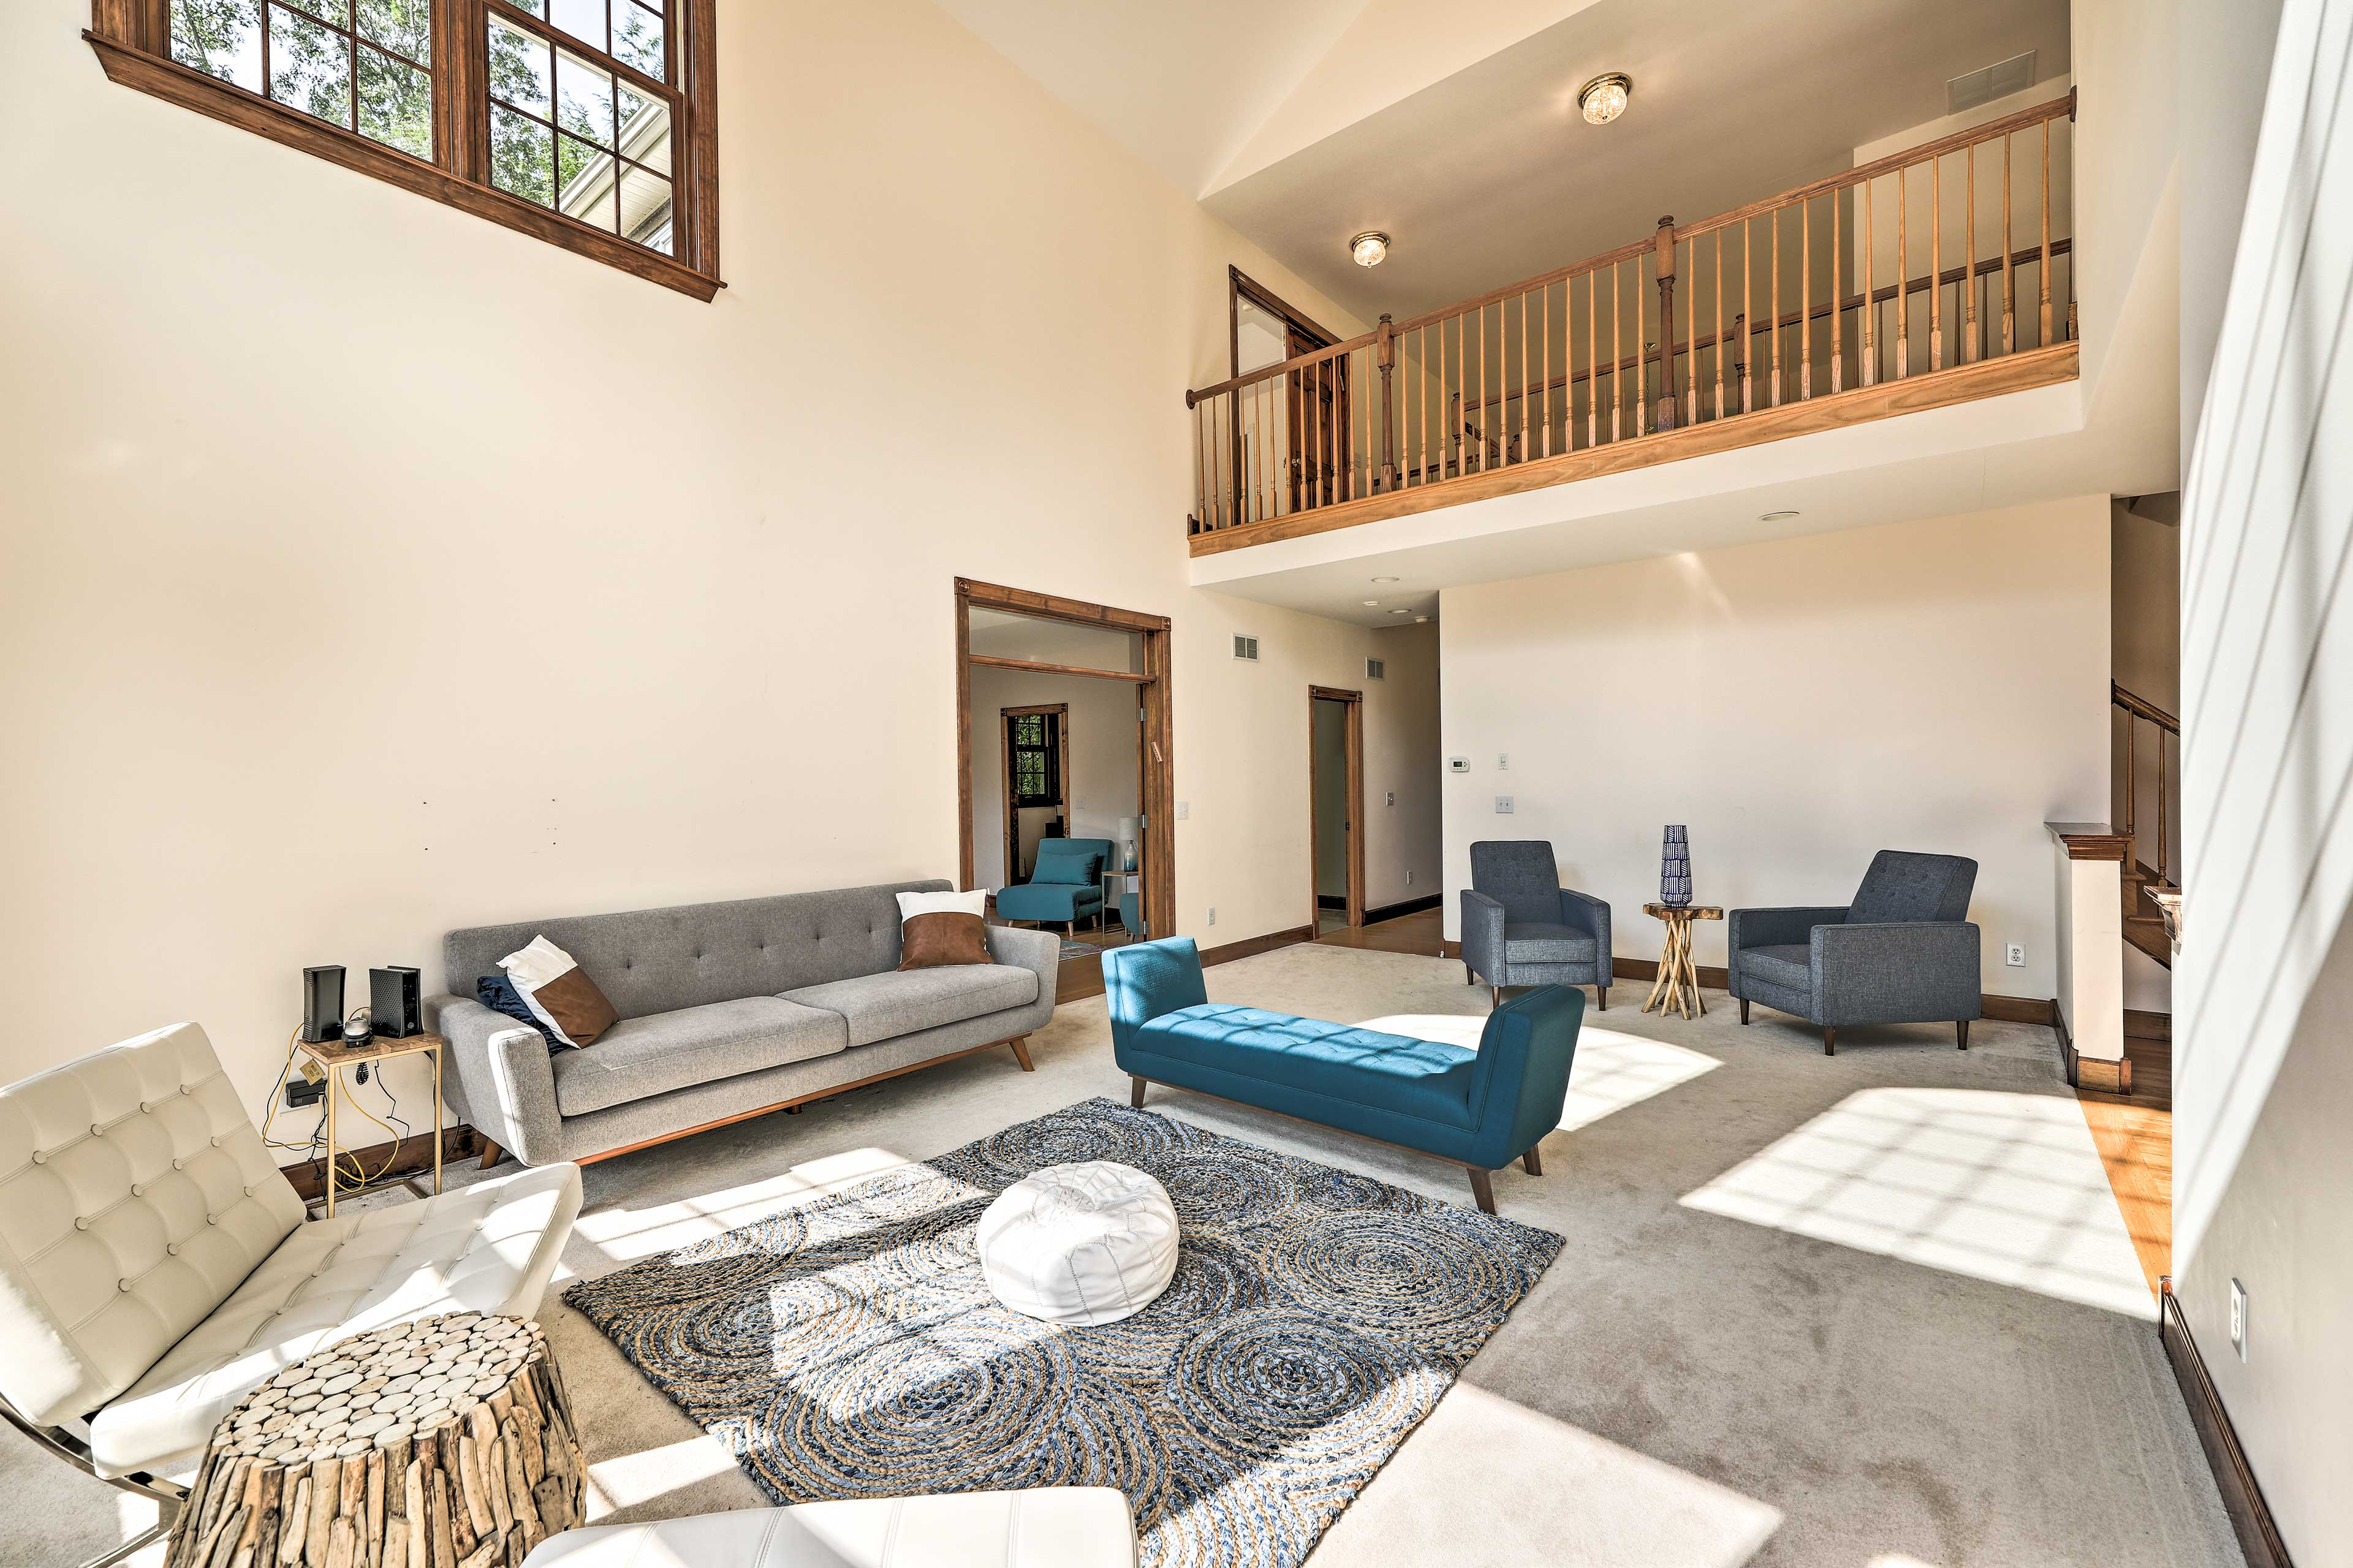 The loft overlook adds extra spaciousness to the interior.